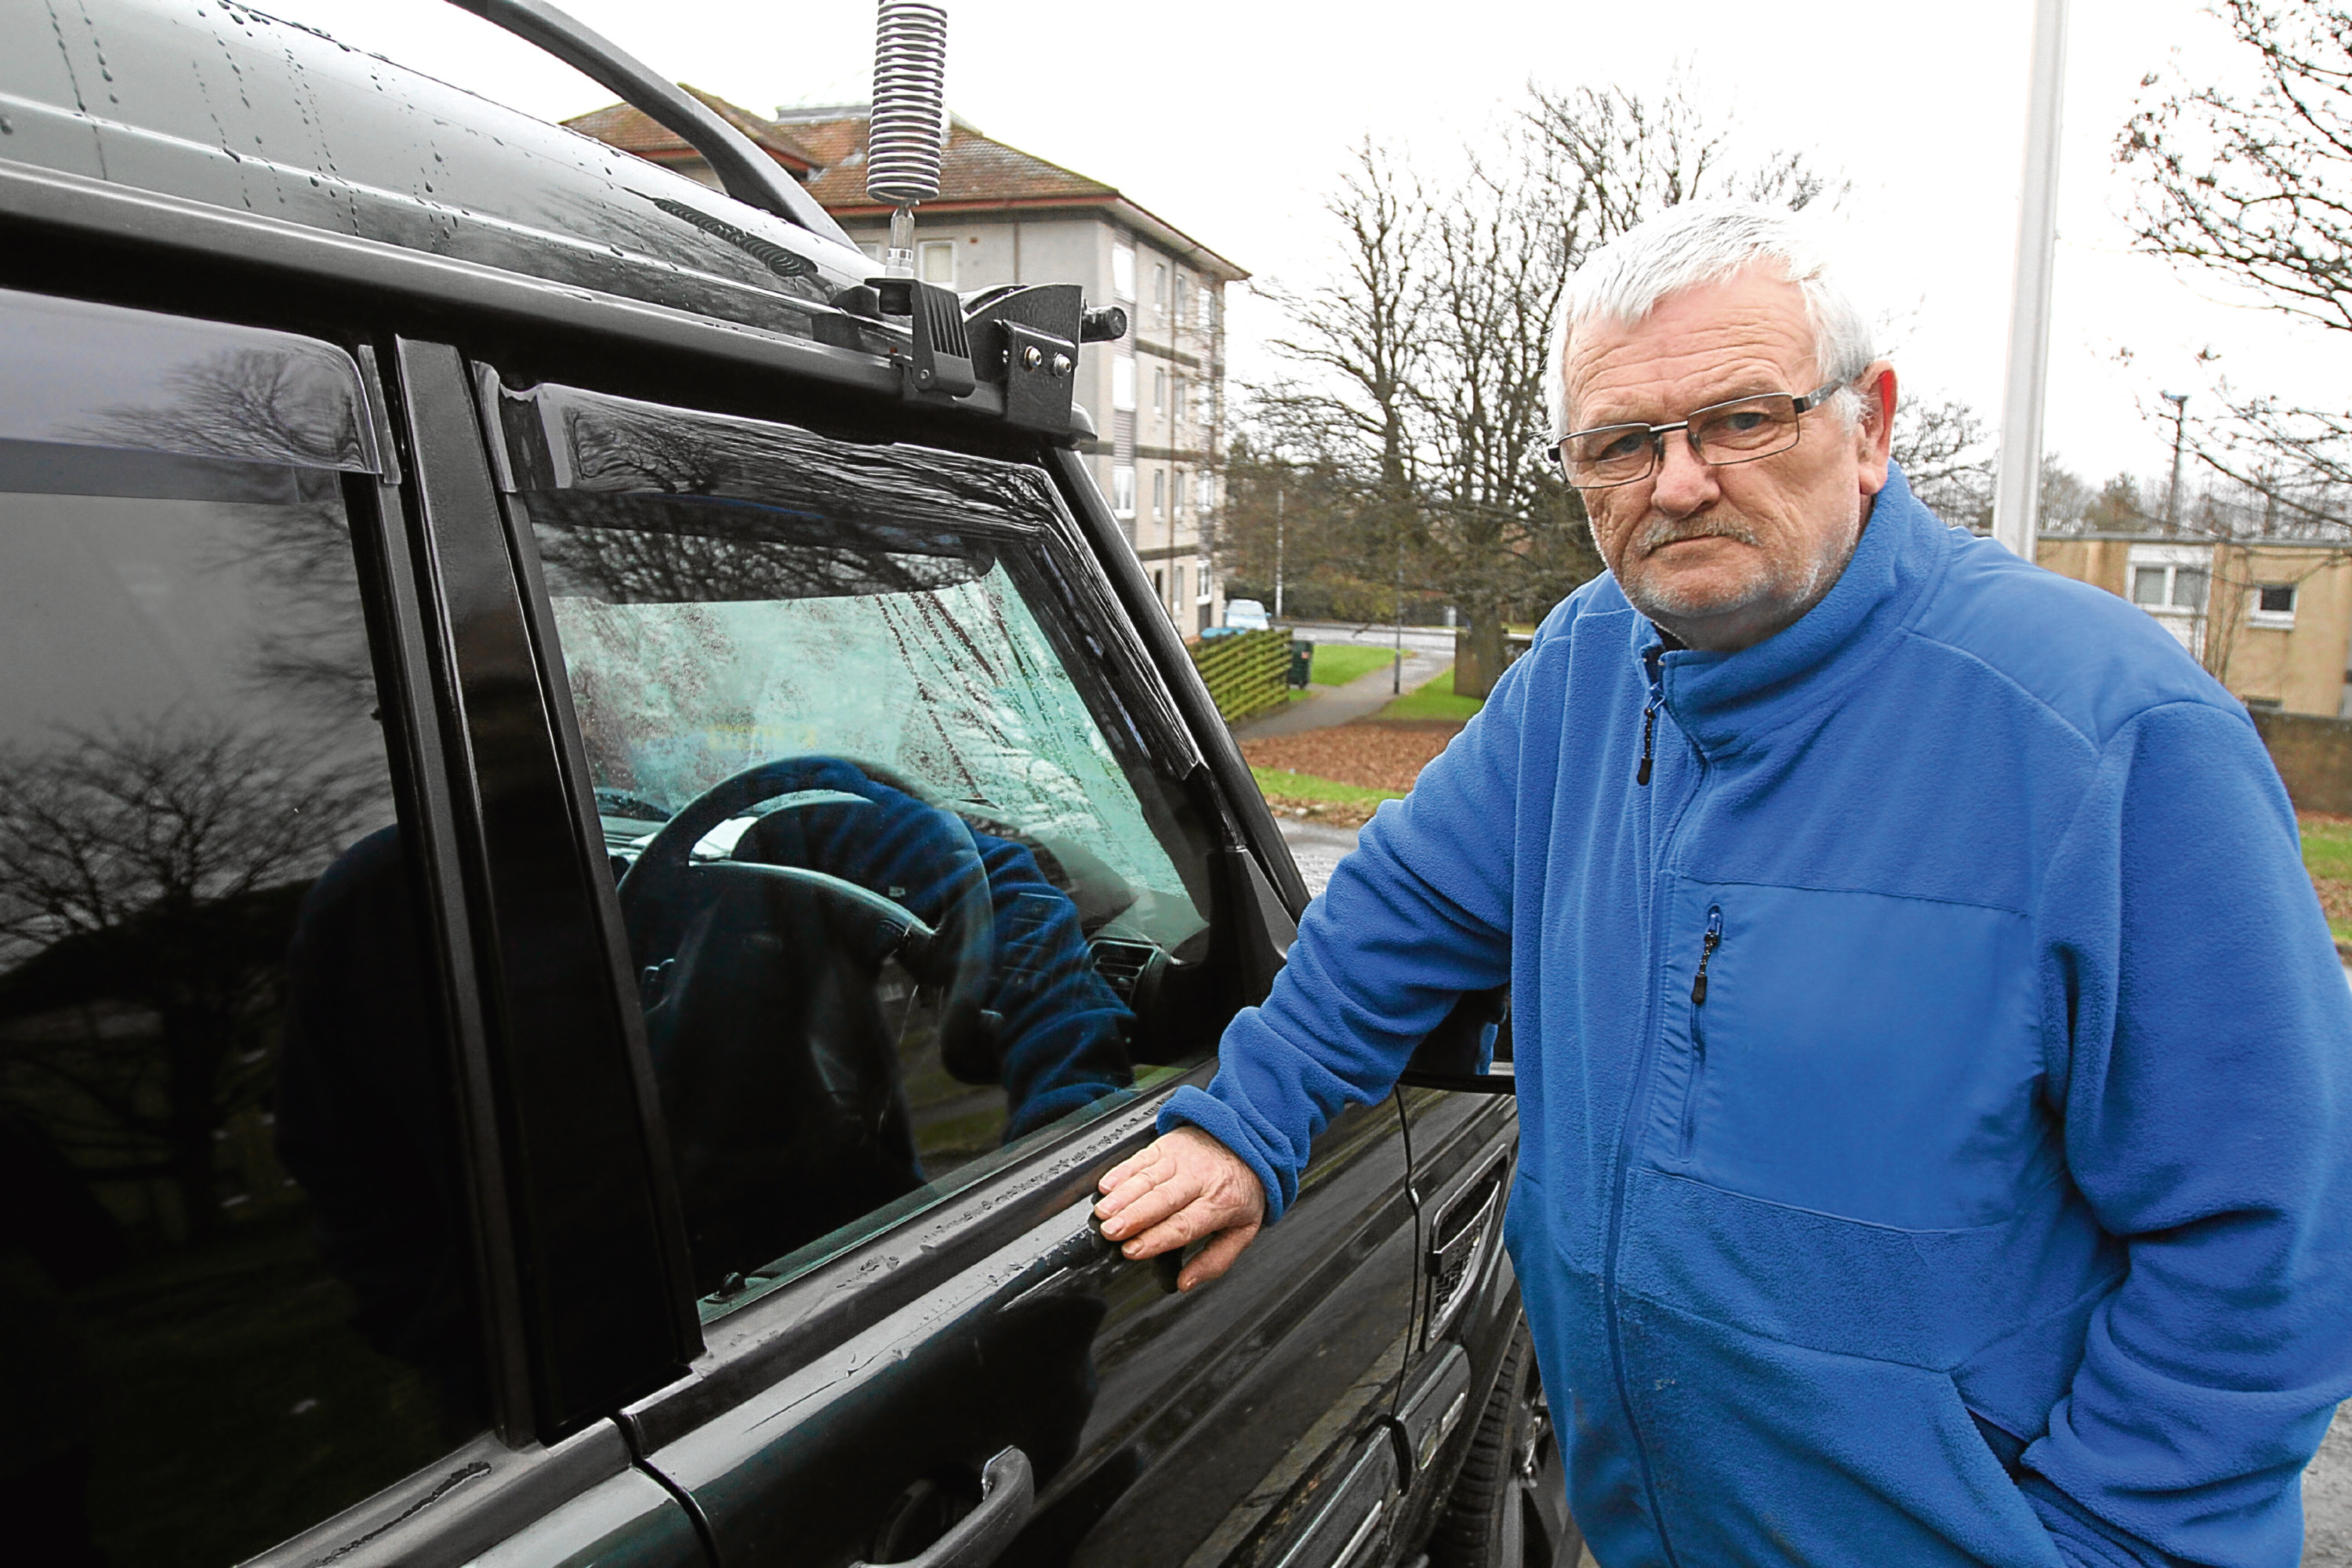 Brian Miller, of Menzieshill, said he is still living in fear and is terrified to leave his own home.